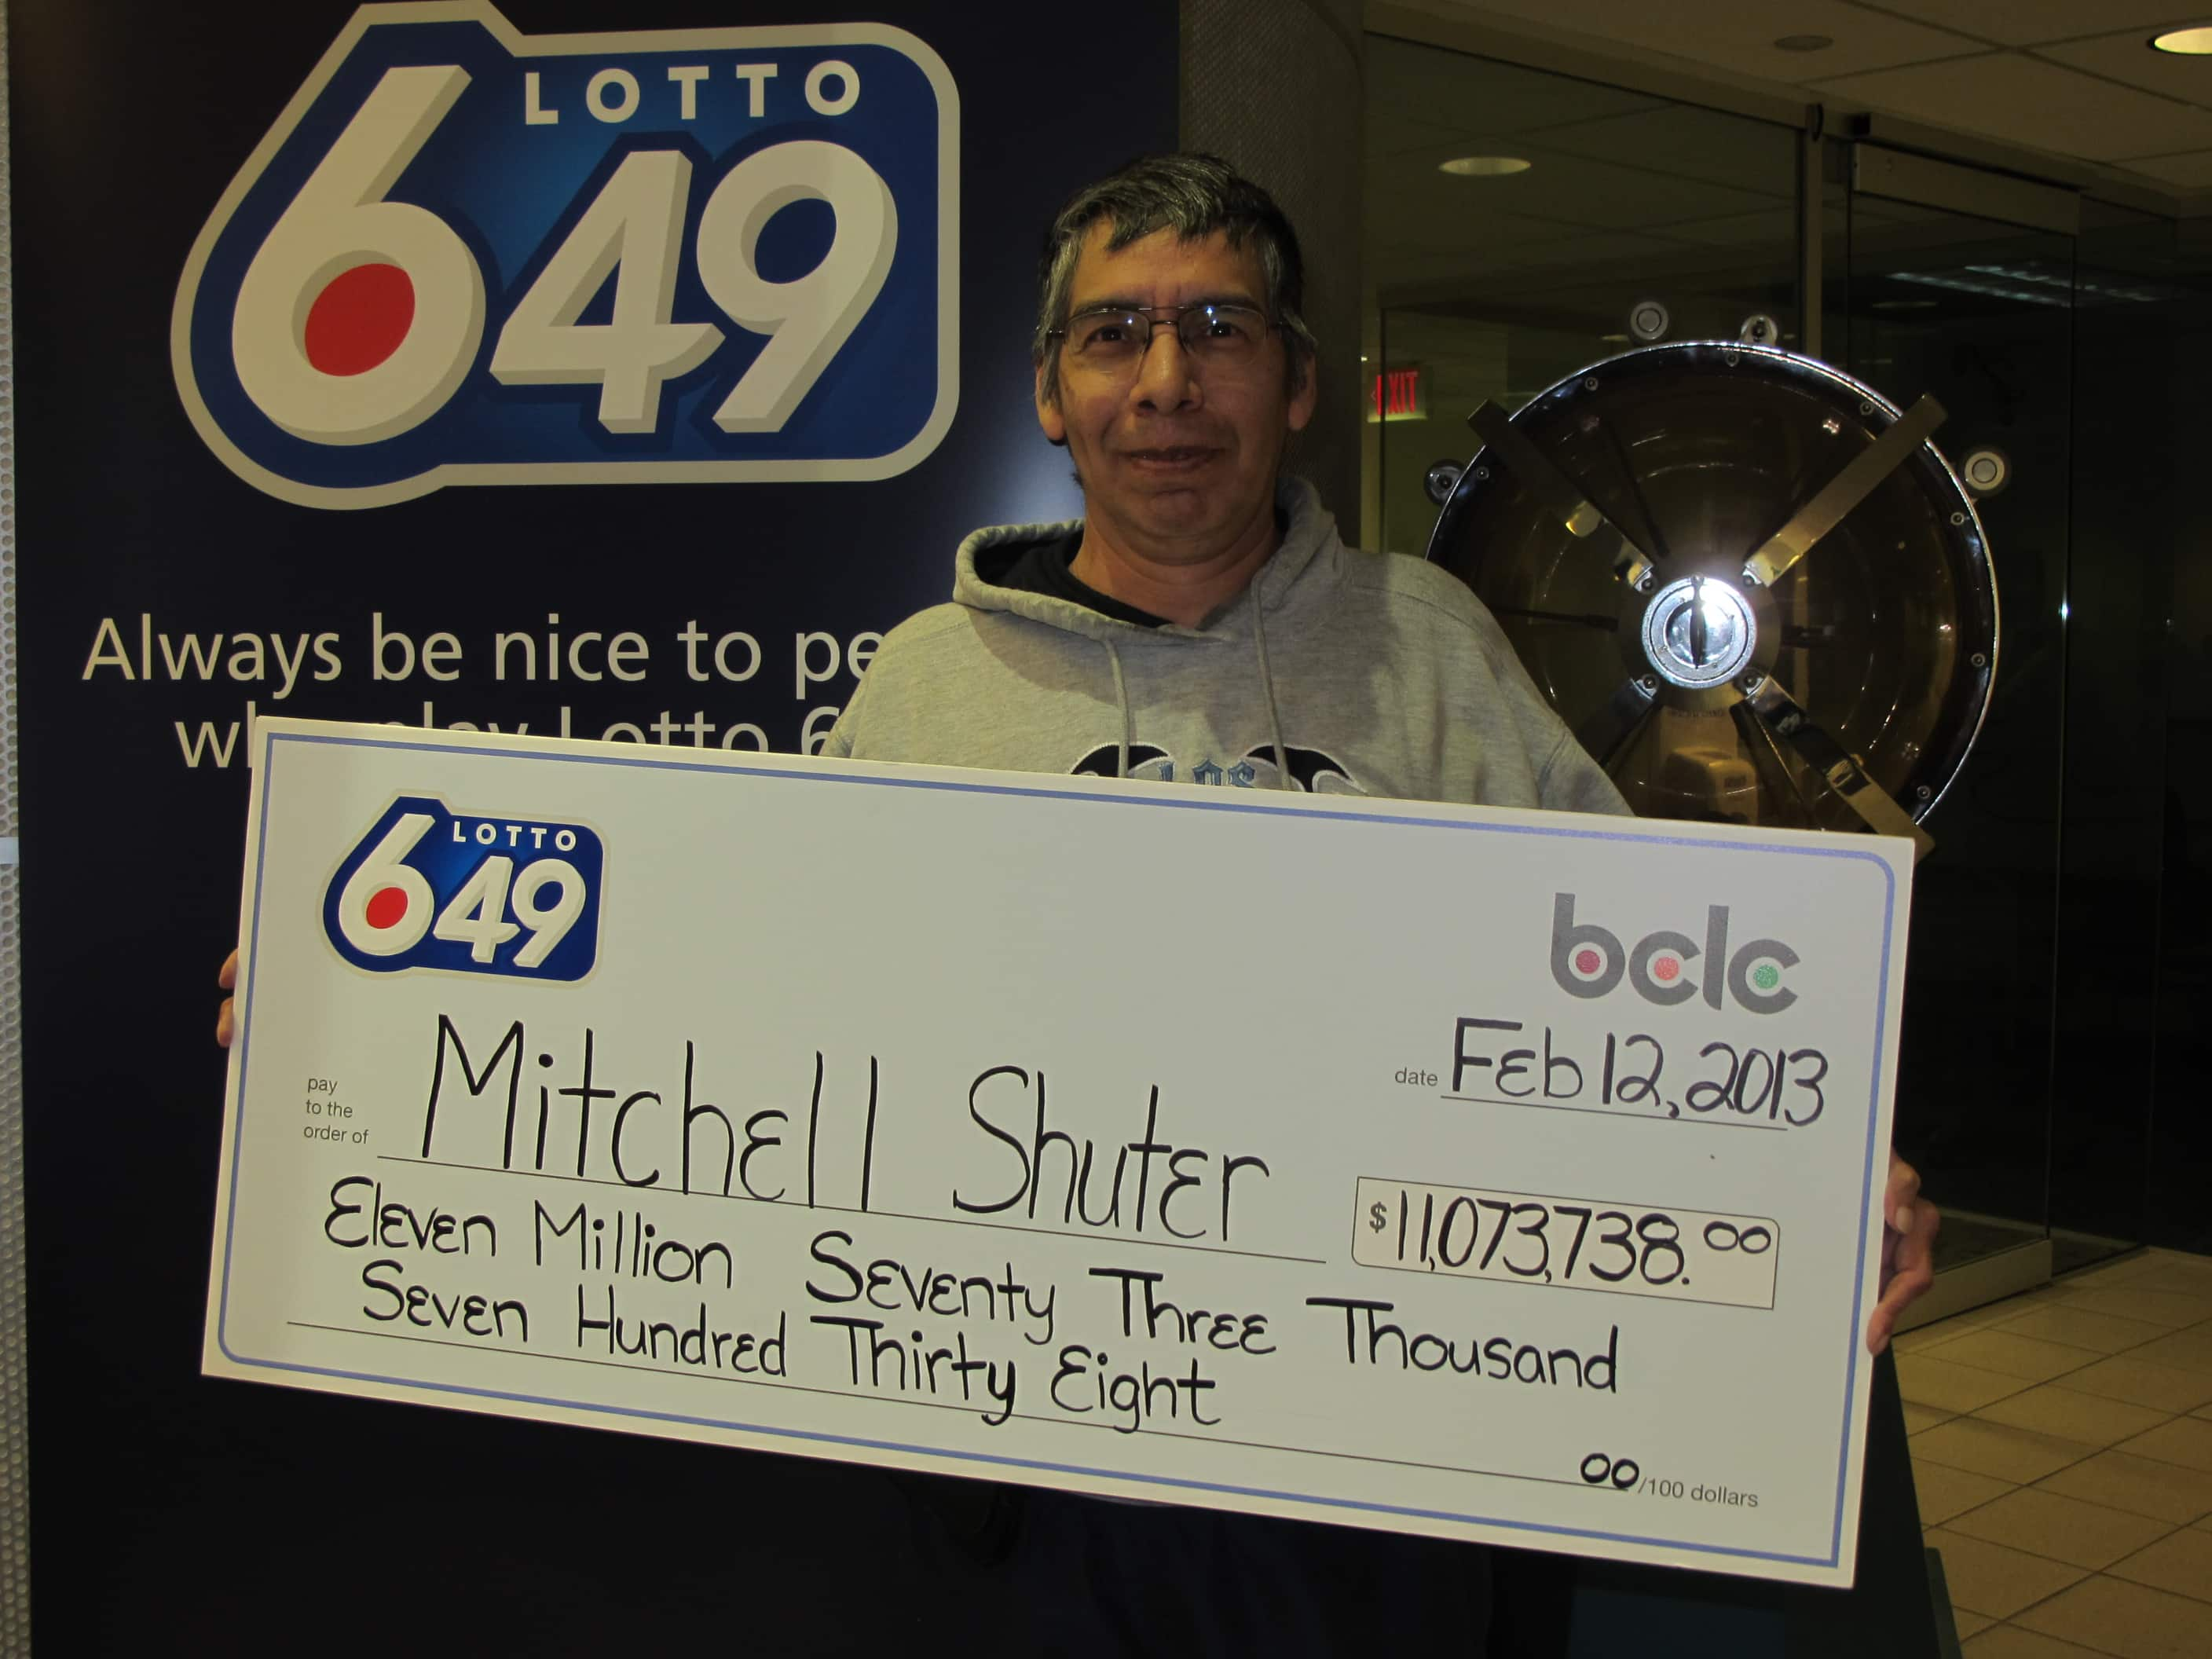 SHUTER Mitchell_Merritt Lotto 649 Winner.JPG